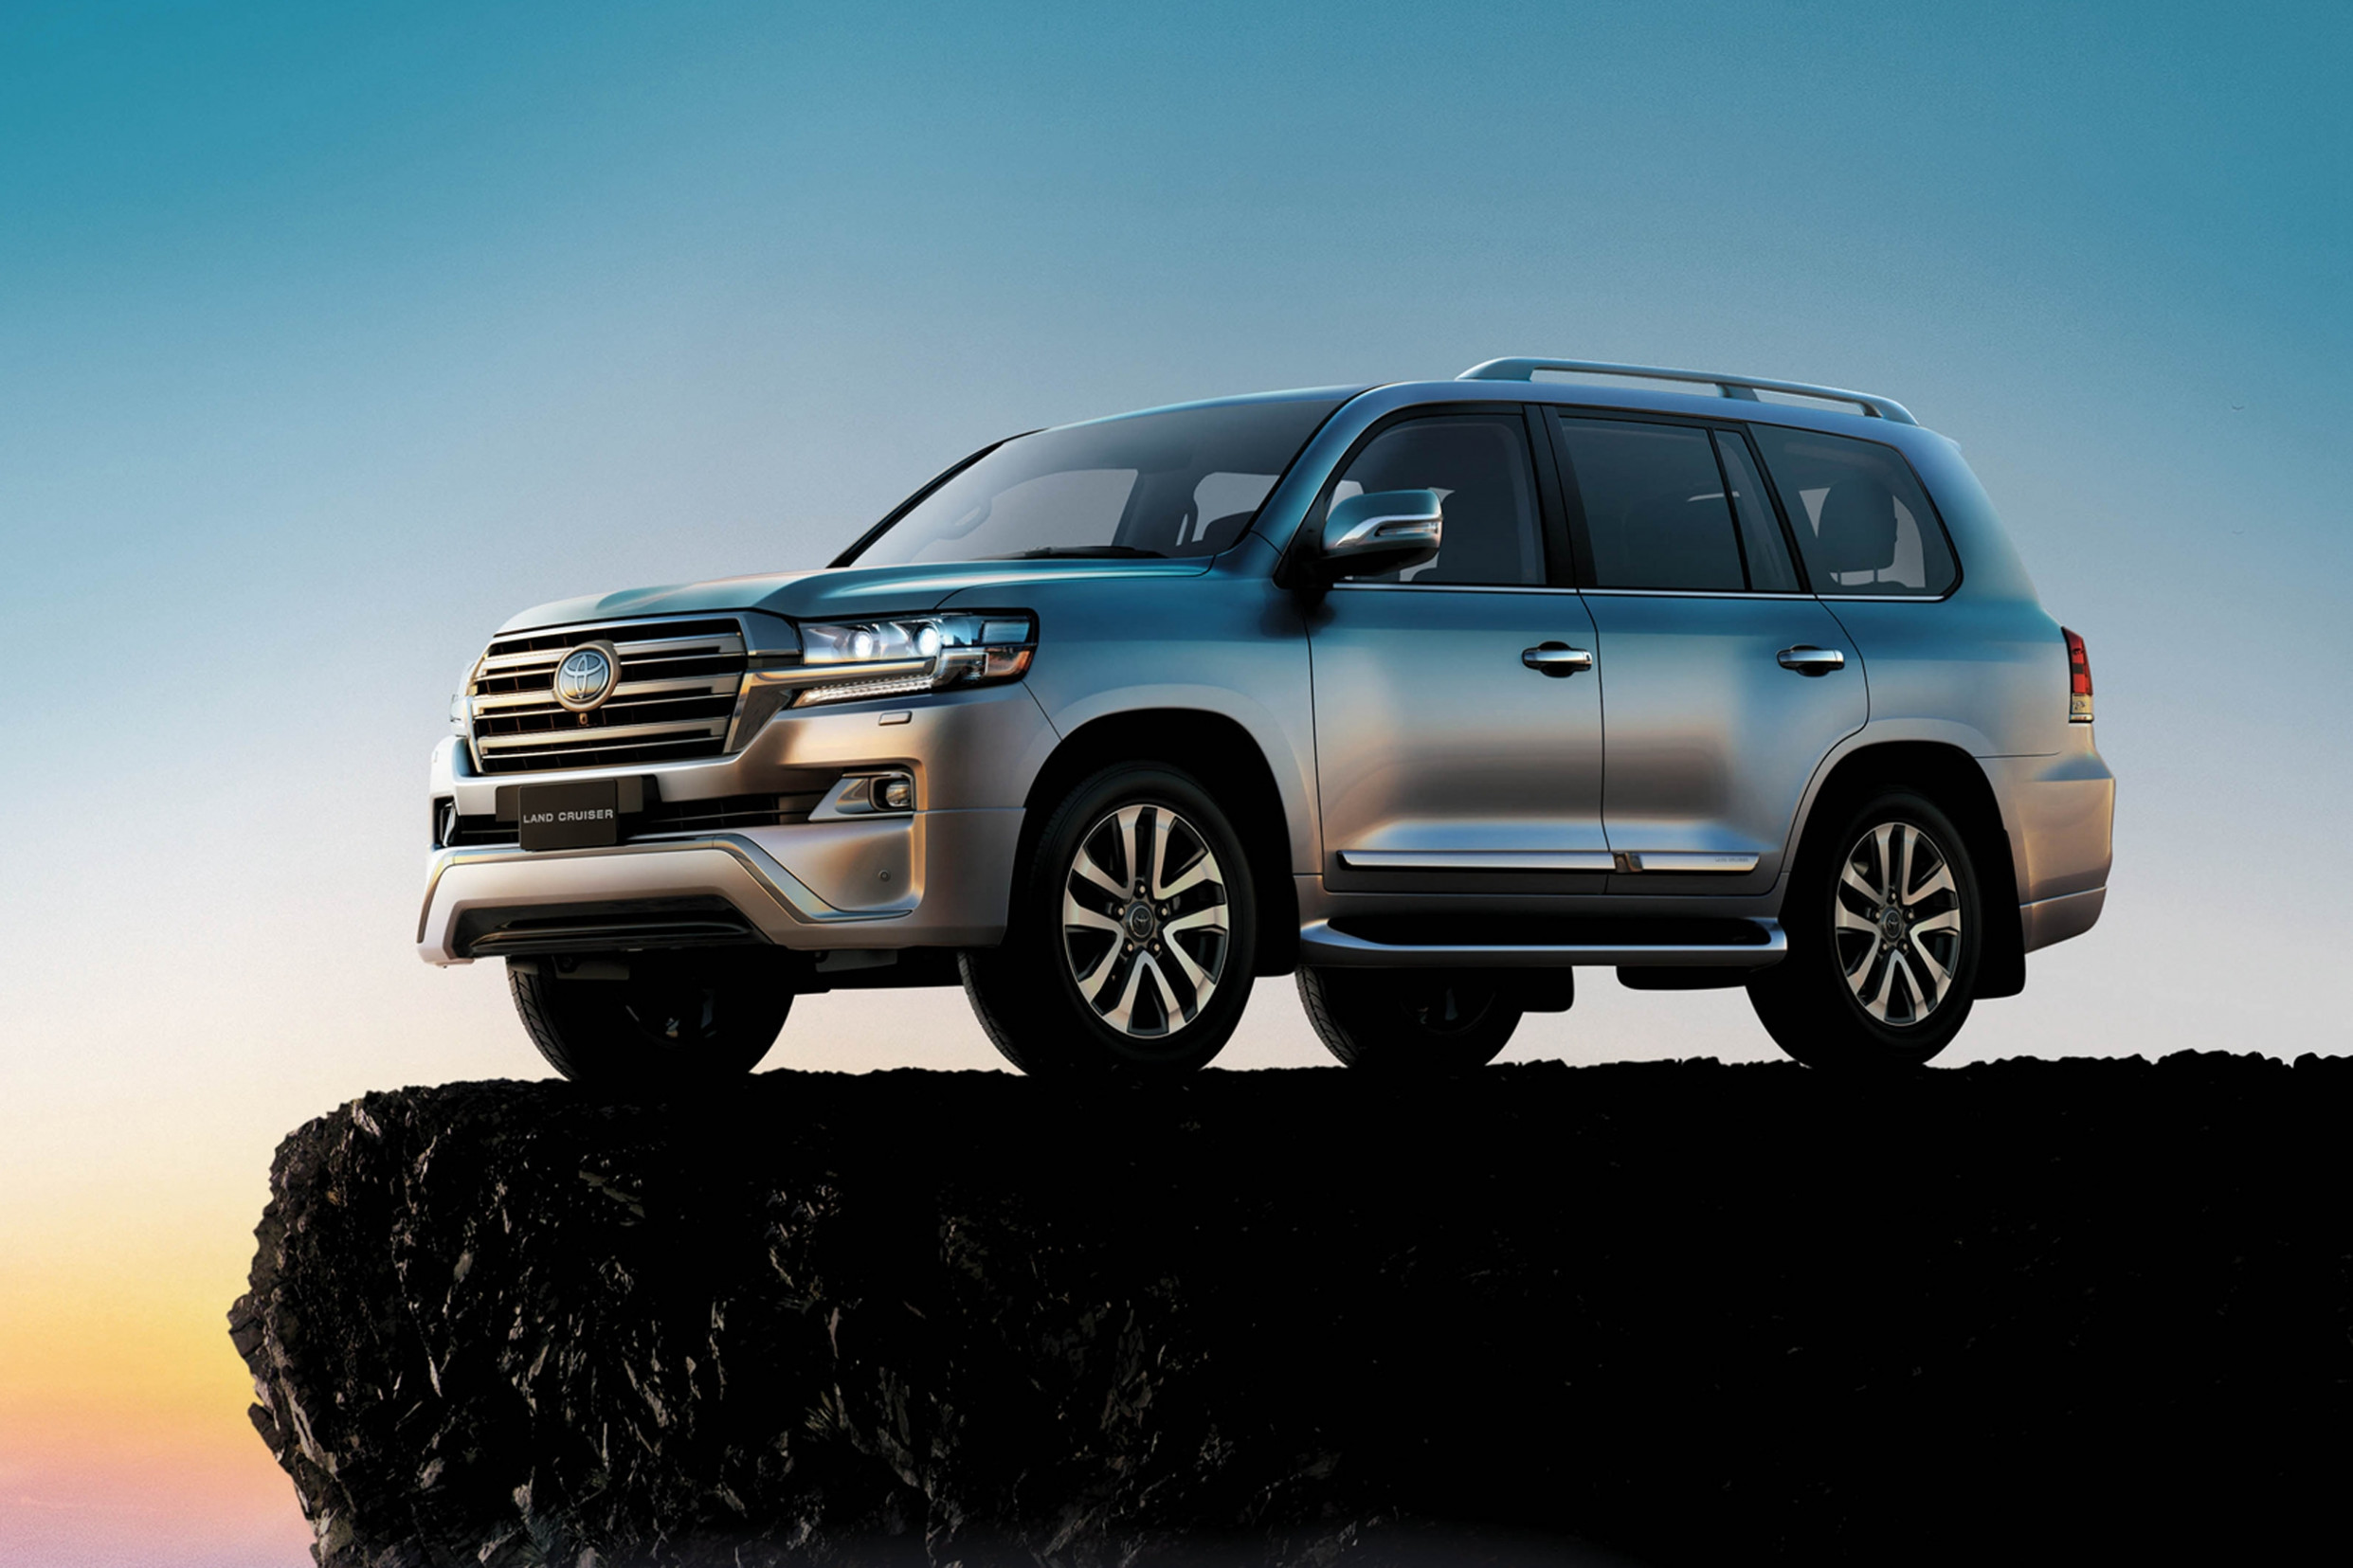 New Model and Performance 2022 Land Cruiser